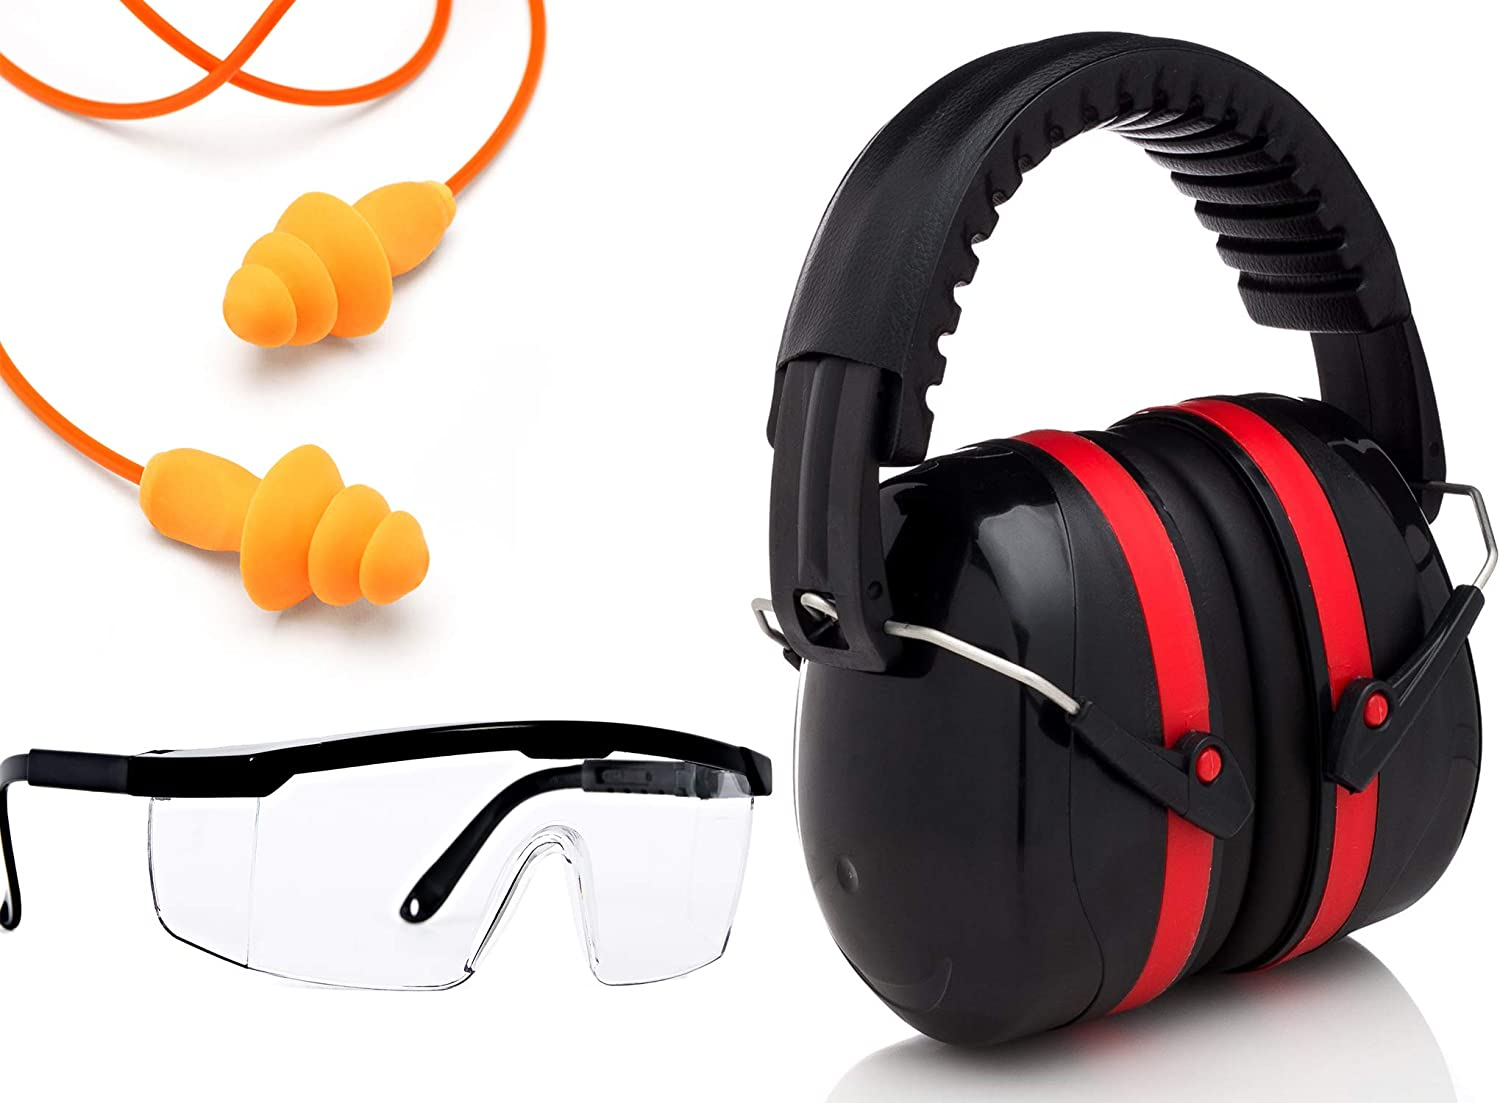 Ear Noise hearing Protection Muffs, Ear Plugs, Safety Glasses, for Shooting set